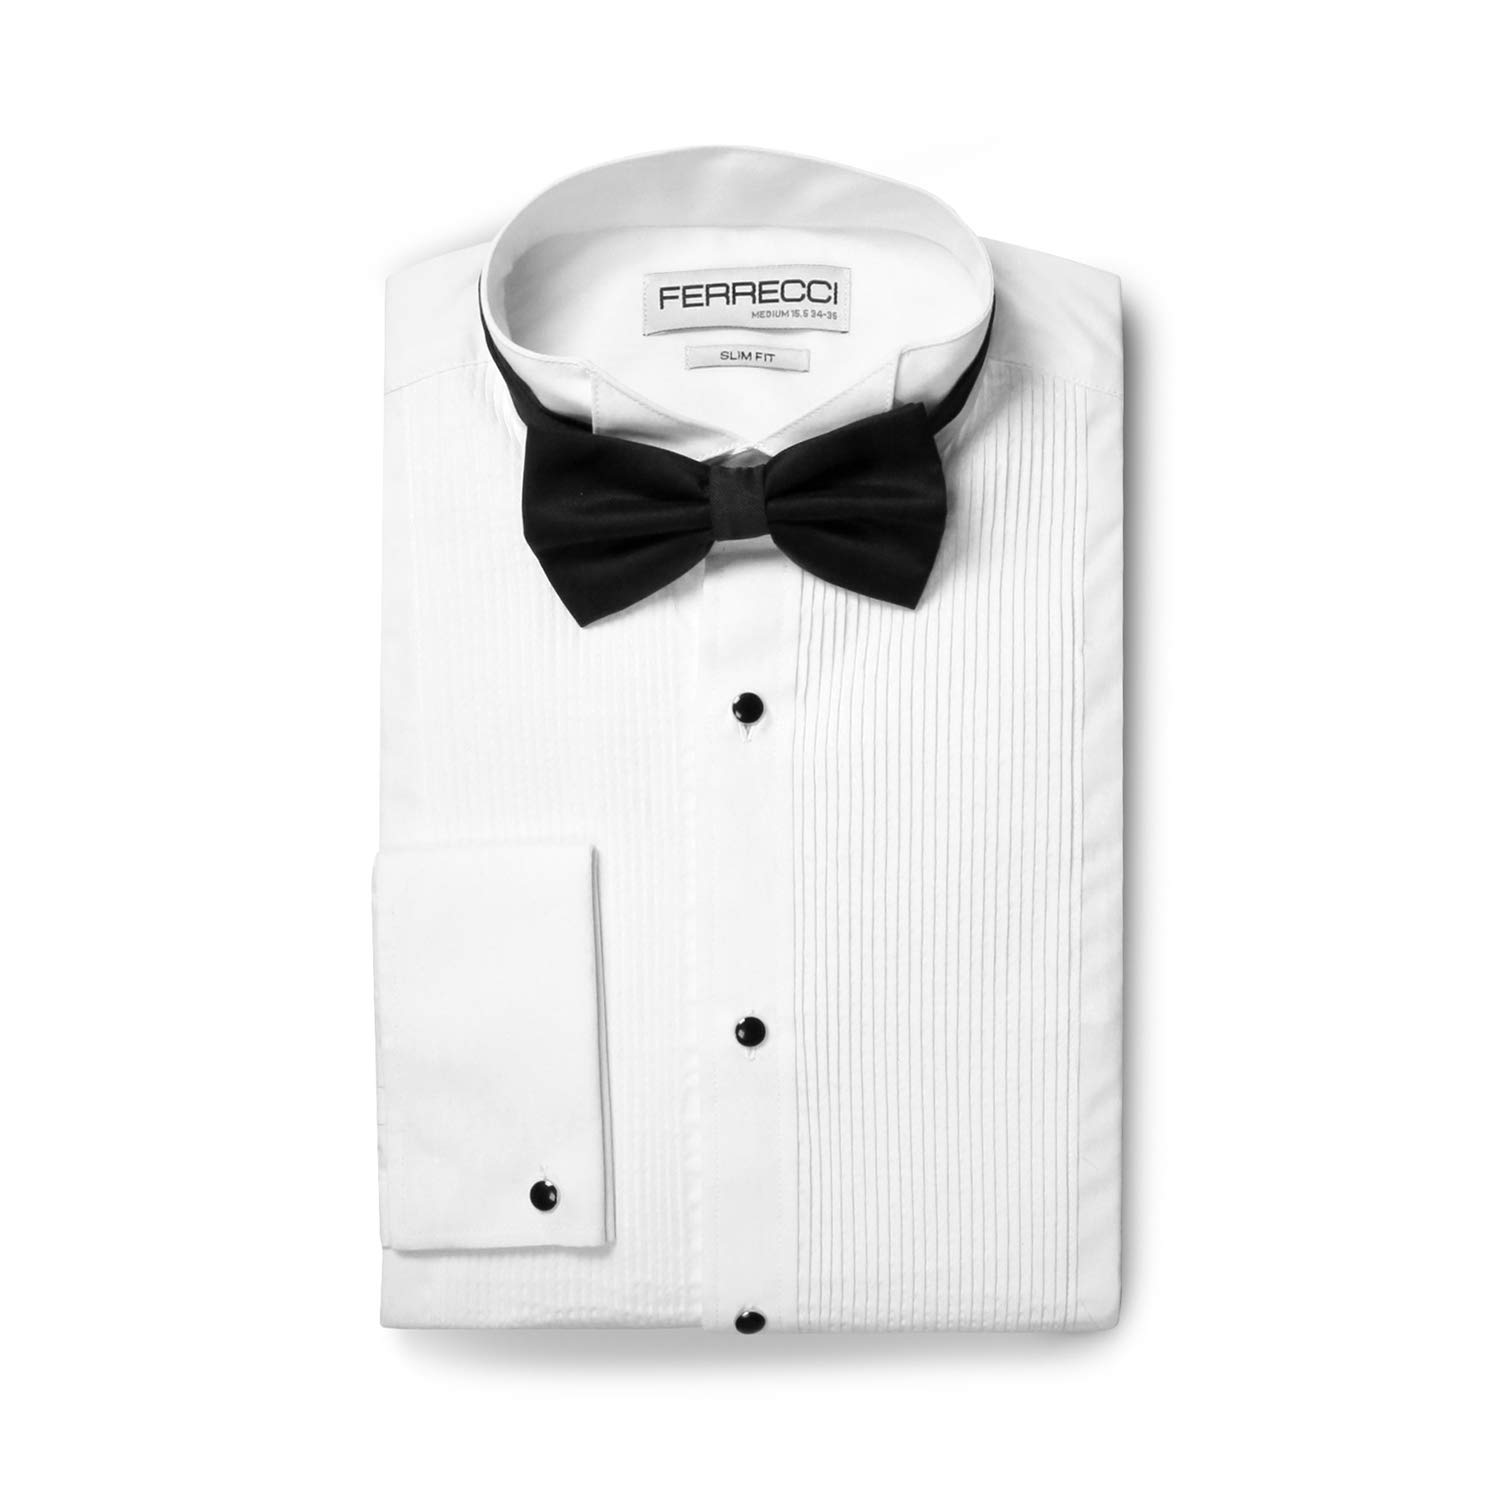 Ferrecci Men's Max White Slim Fit Wing Tip Collar Pleated Tuxedo Shirt with Bowtie (M15.5 32) by Ferrecci